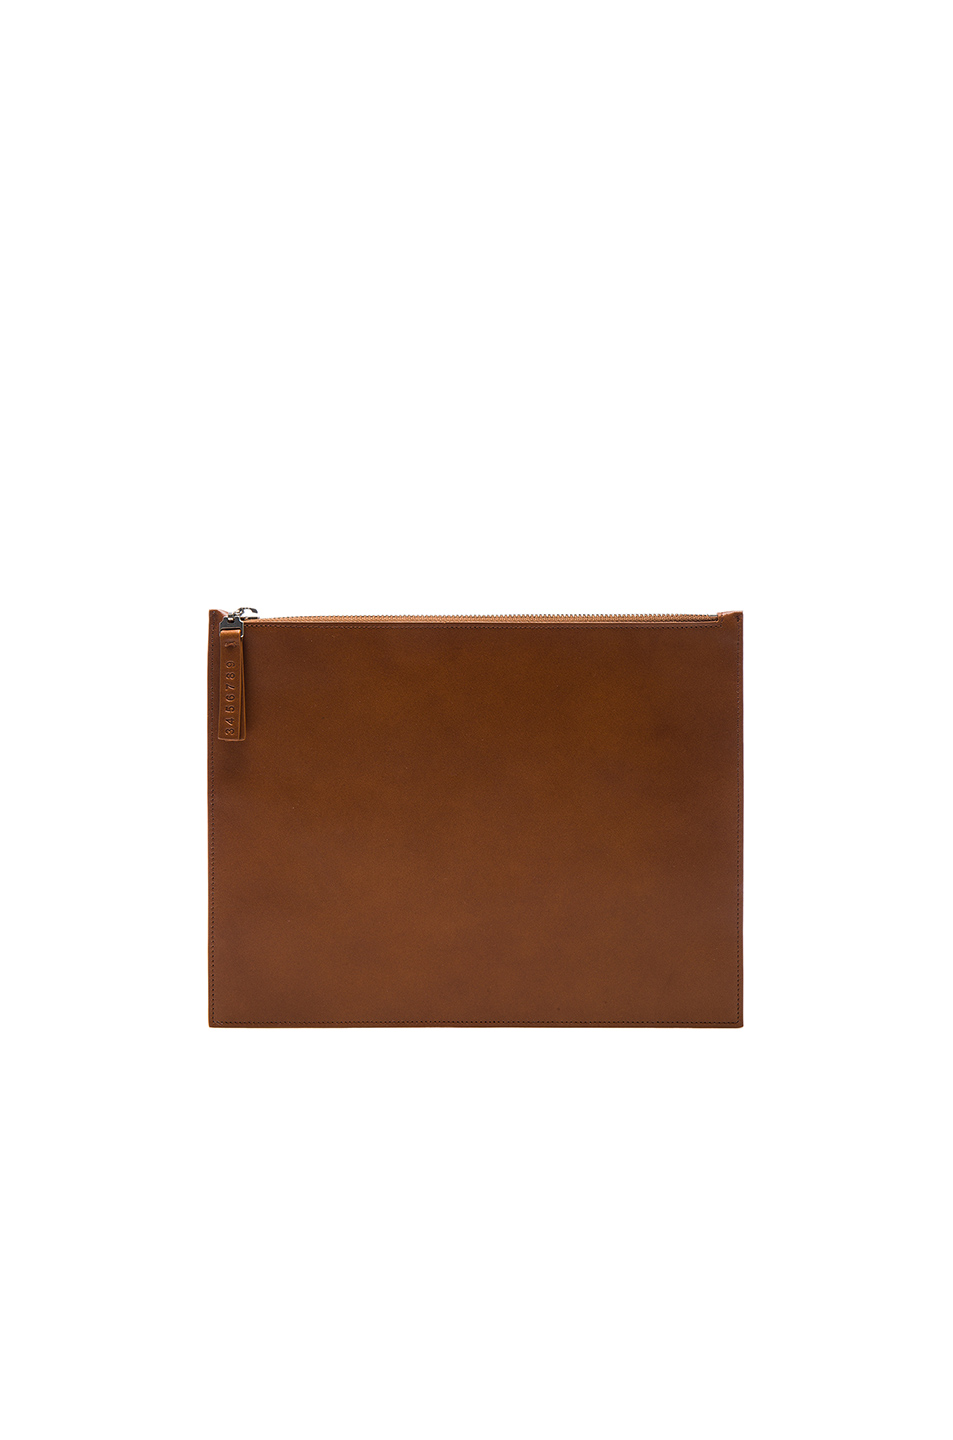 Maison Margiela Calf Leather Pouch in Neutrals,Brown